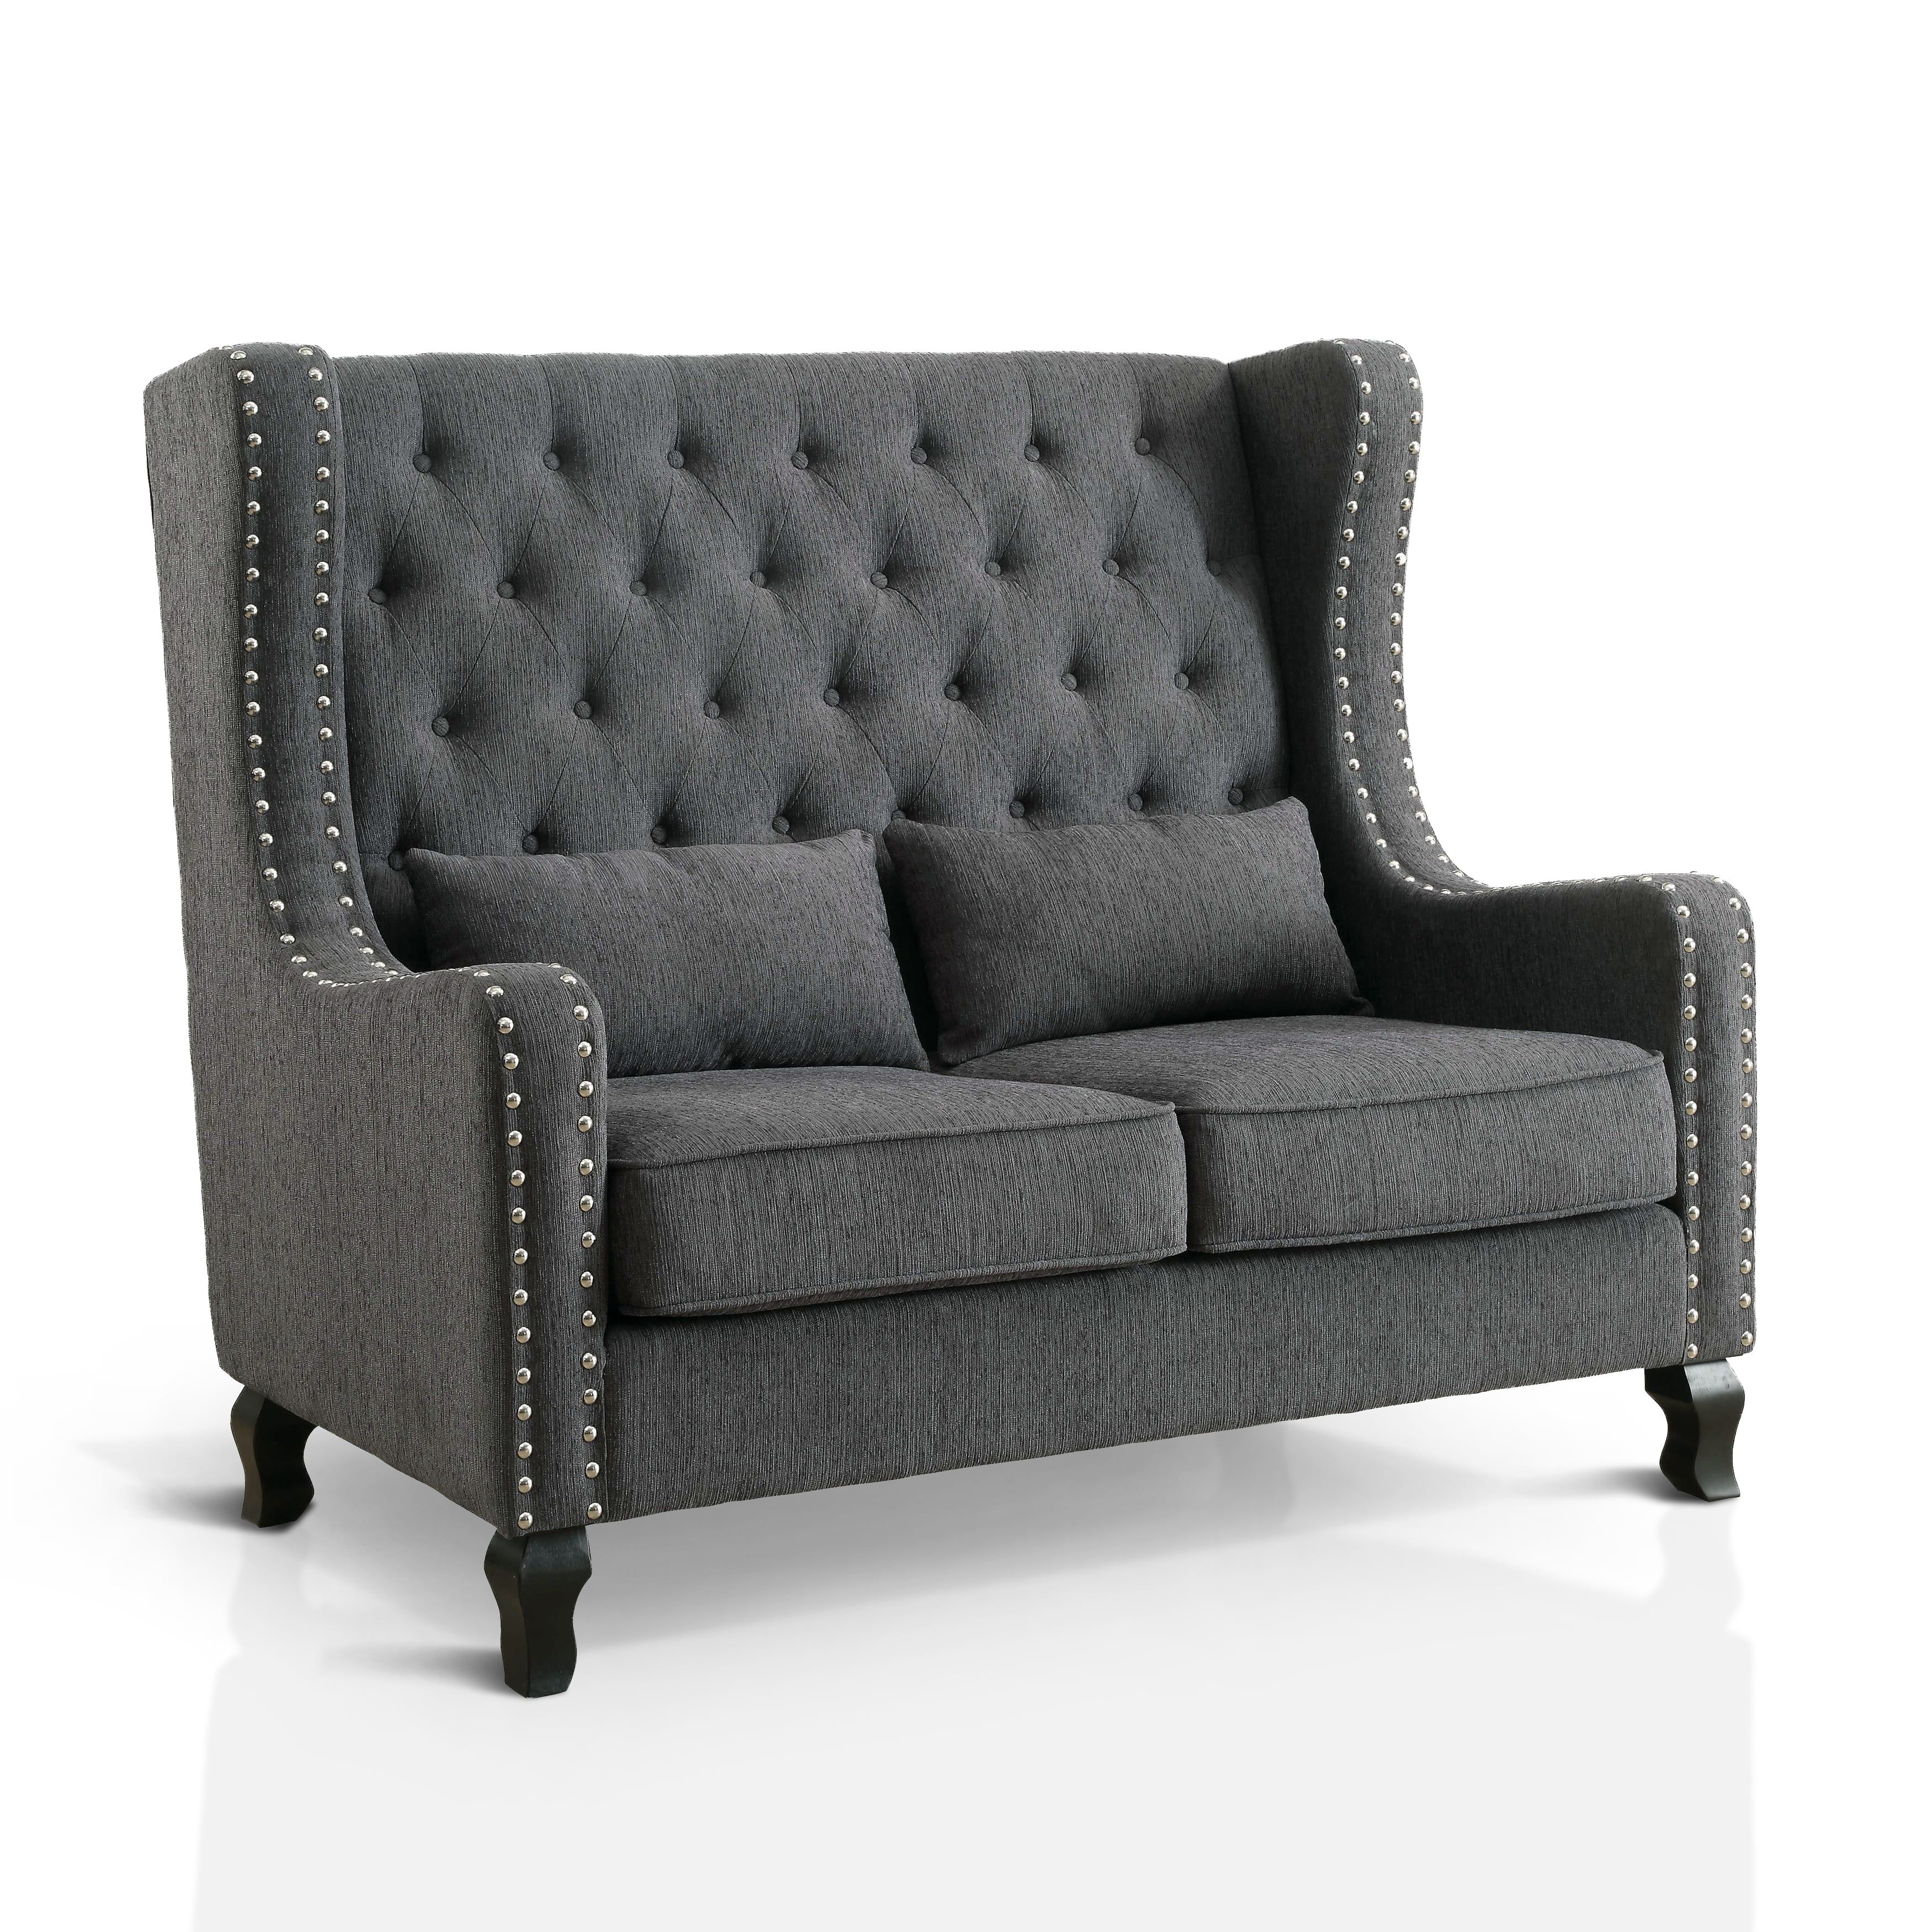 Prime Furniture Of America Lystelle Romantic Wingback Button Ncnpc Chair Design For Home Ncnpcorg